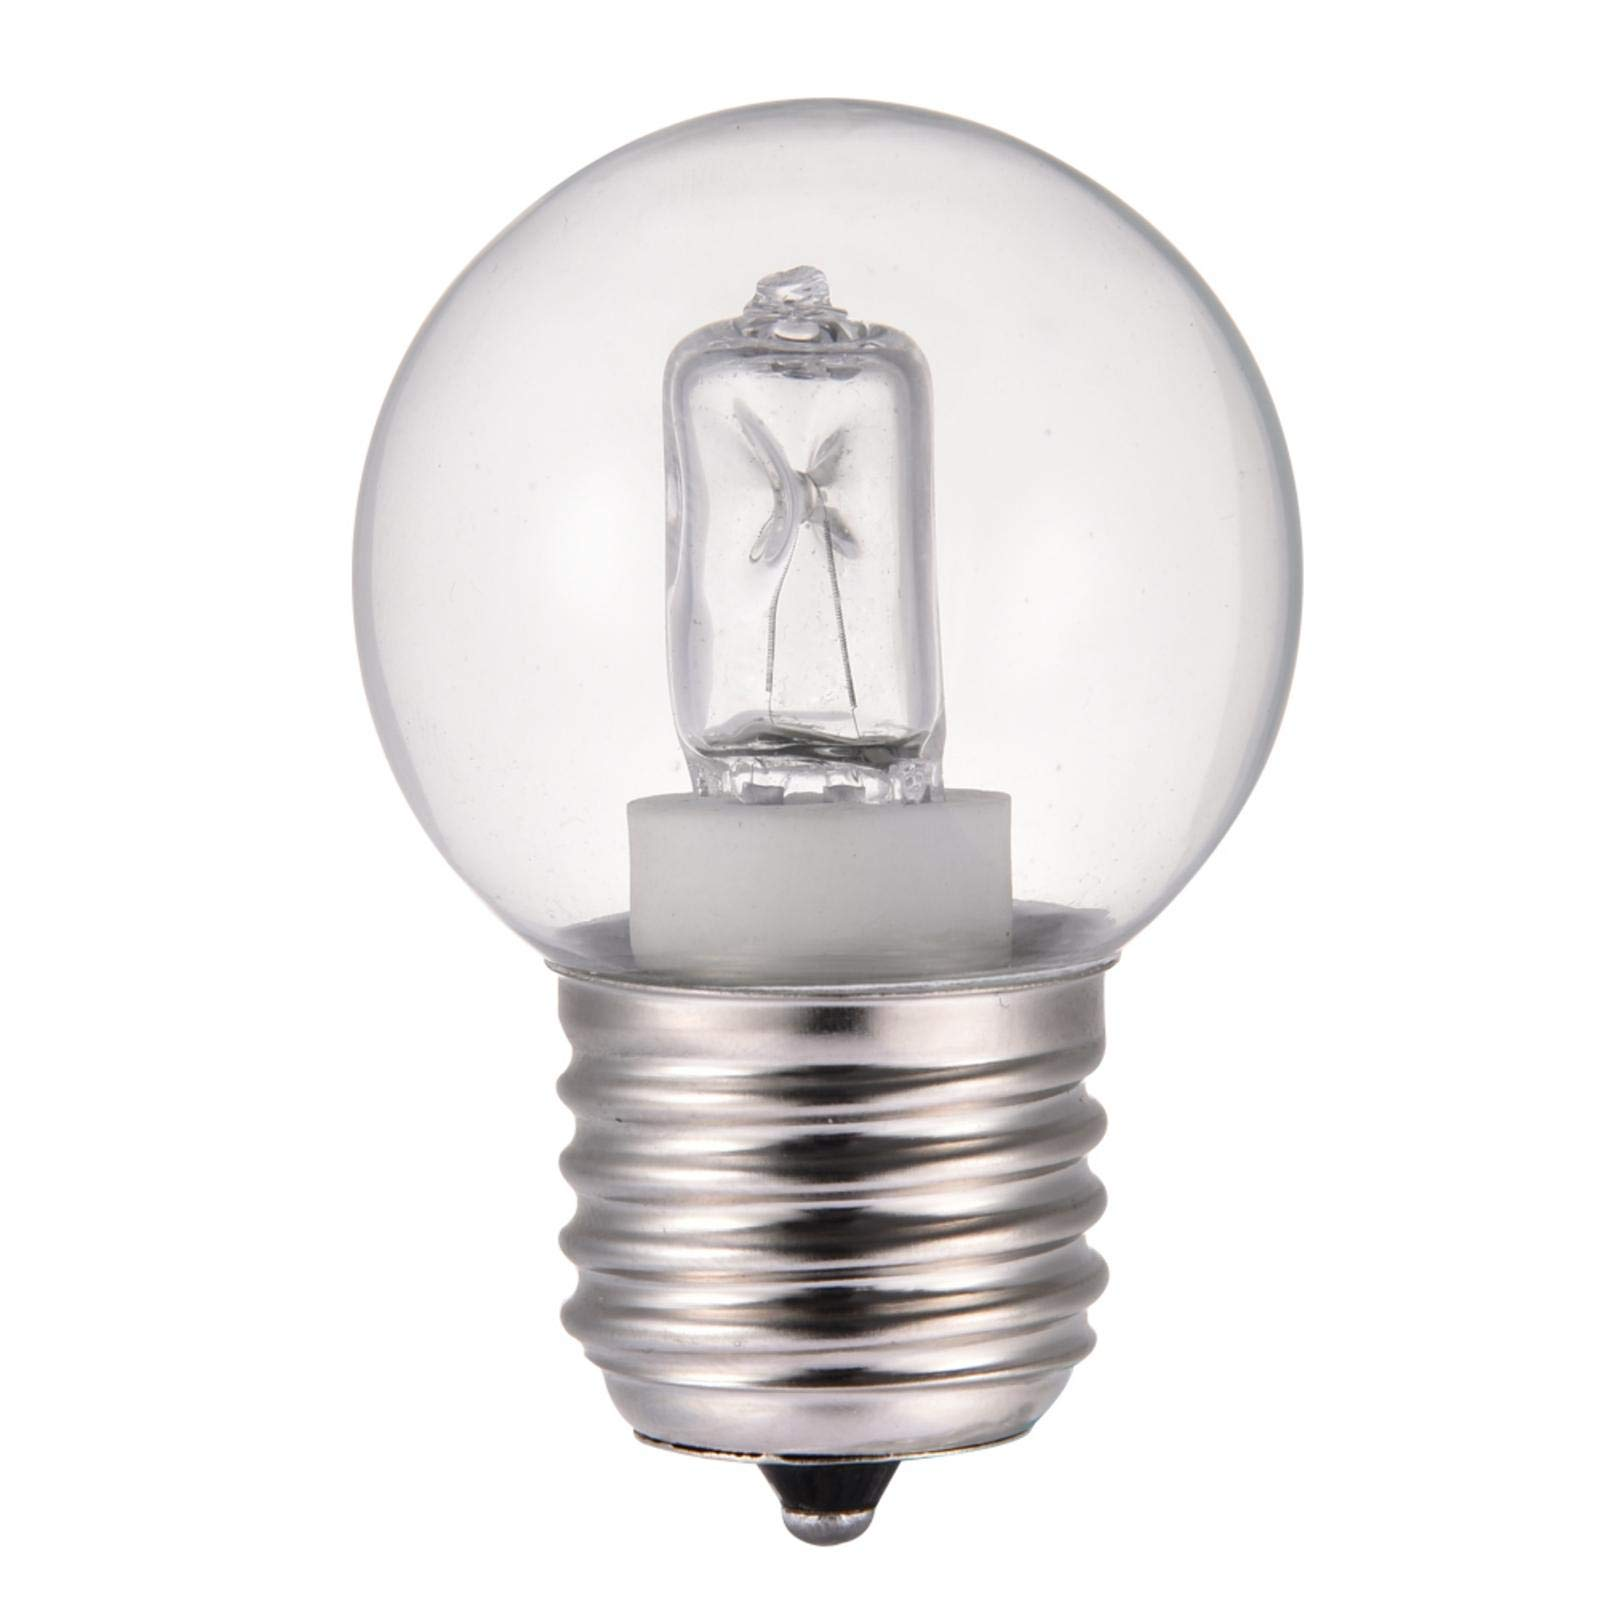 Betteros Oven Bulbs 40W Warm White Bulb Small Screw E27 Base, up to 500 Degrees, Microwave/Oven Lamp Light Bulbs